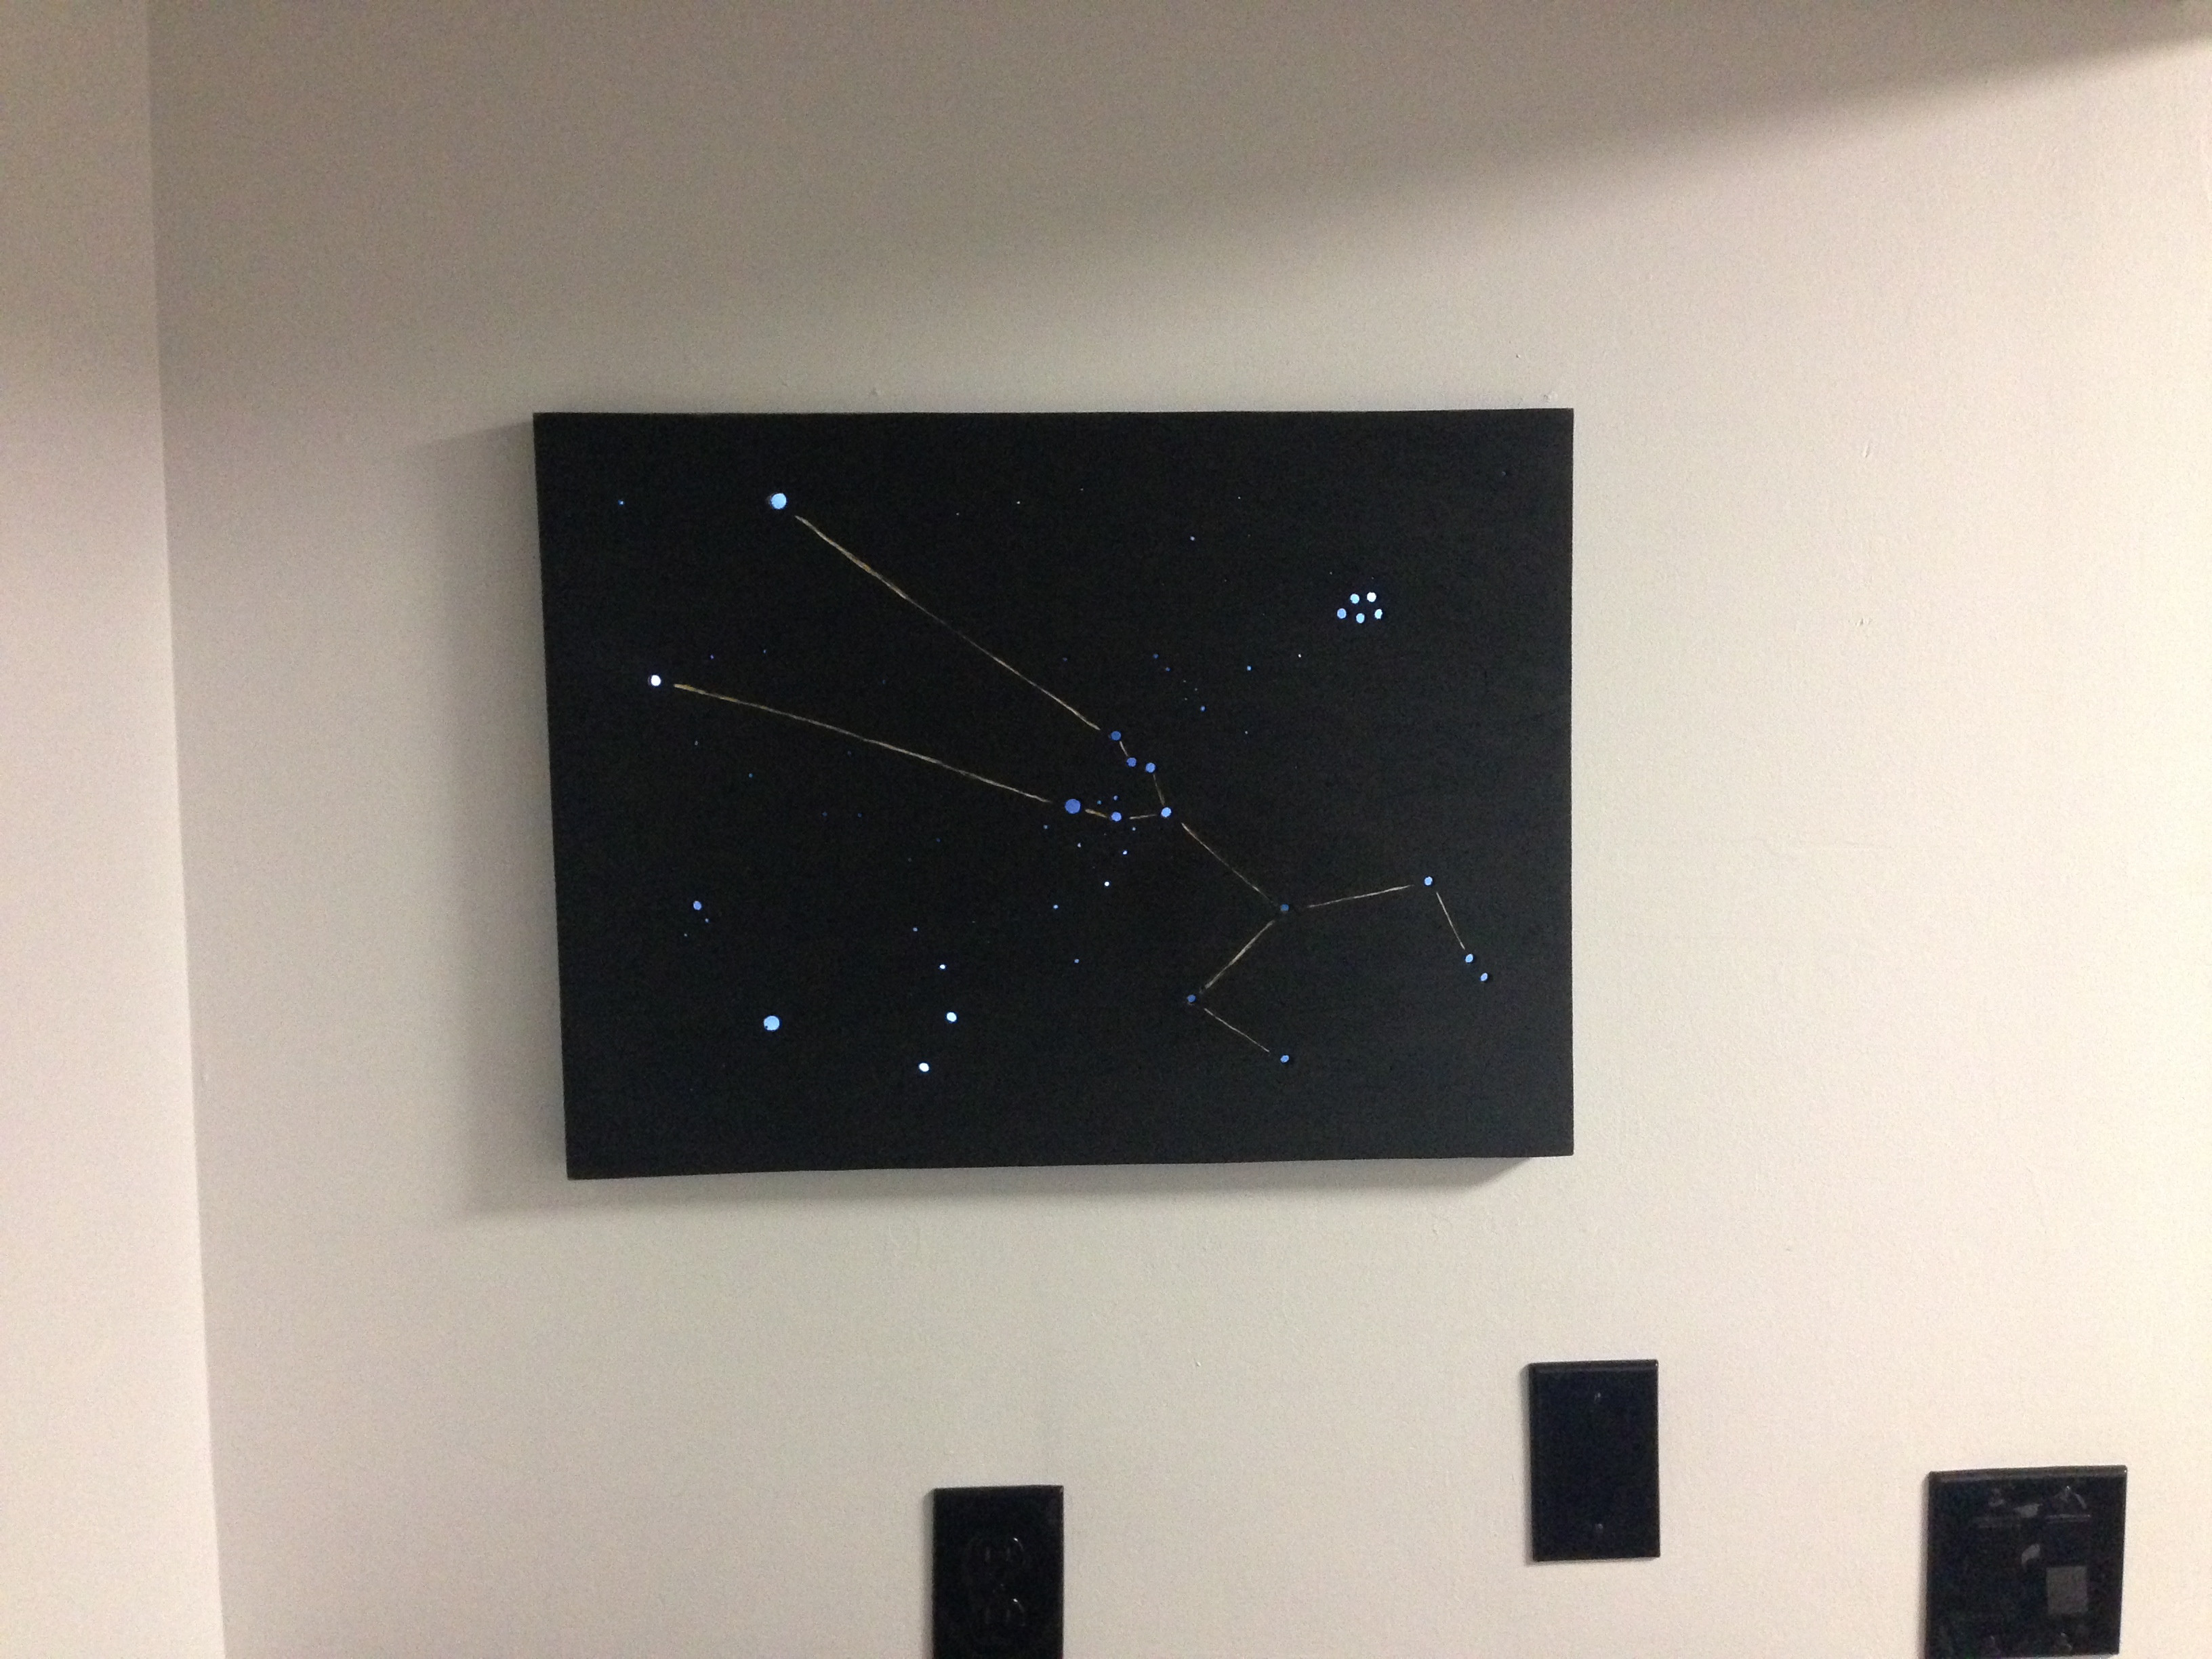 Bring The Cosmos Into Any Room With This Simple DIY LED Wall Art!